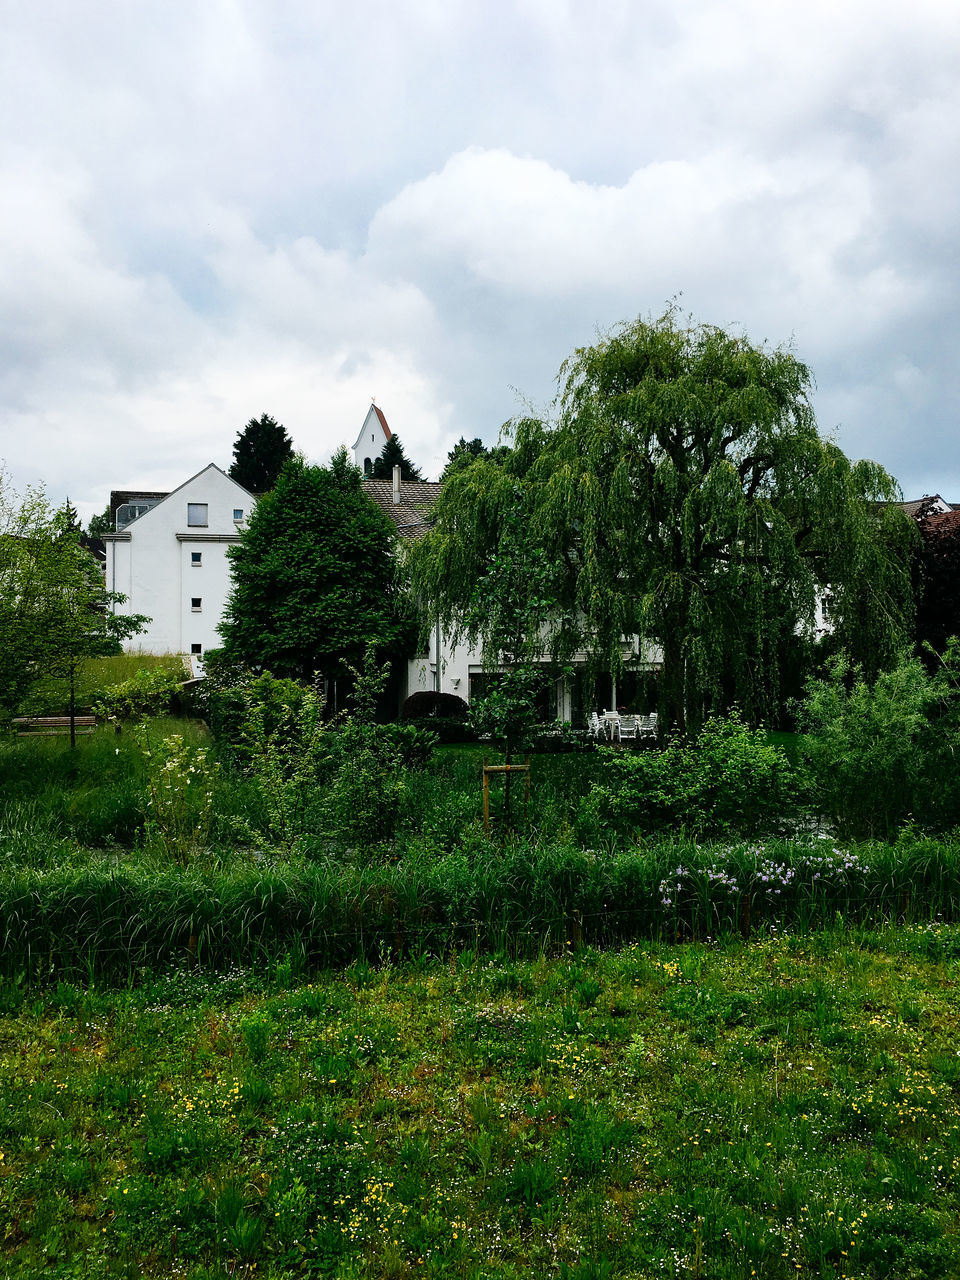 architecture, house, built structure, grass, tree, sky, building exterior, growth, no people, nature, outdoors, day